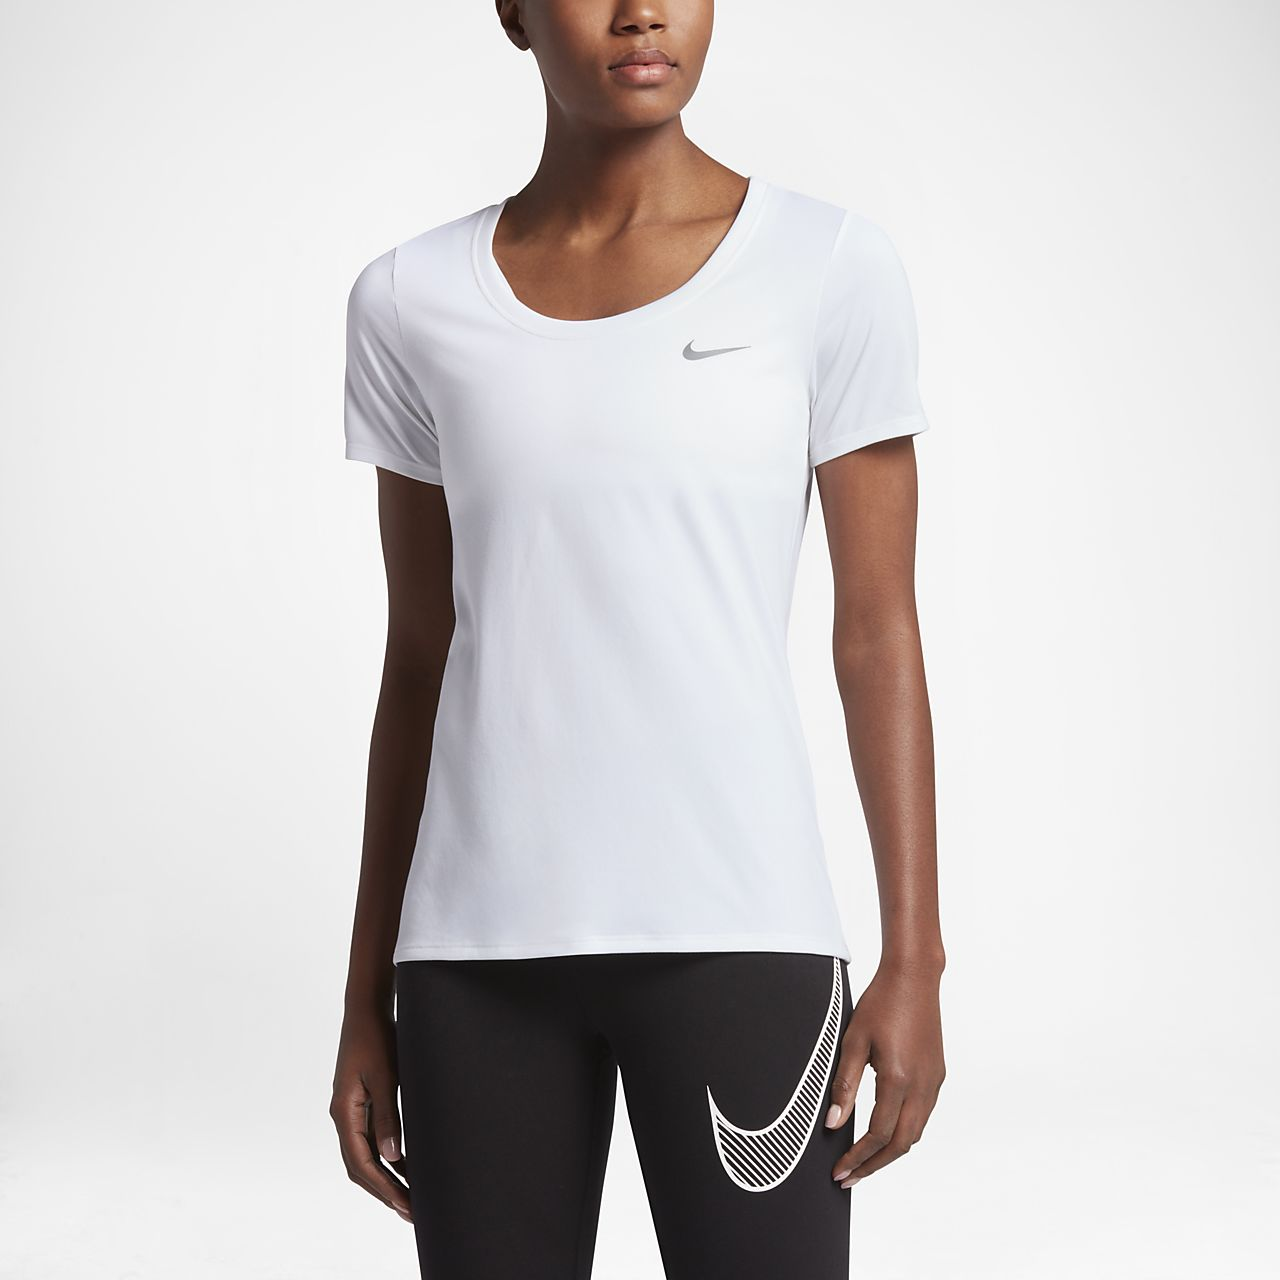 fec6fb770c5 Nike Dri-FIT Women s Training T-Shirt. Nike.com